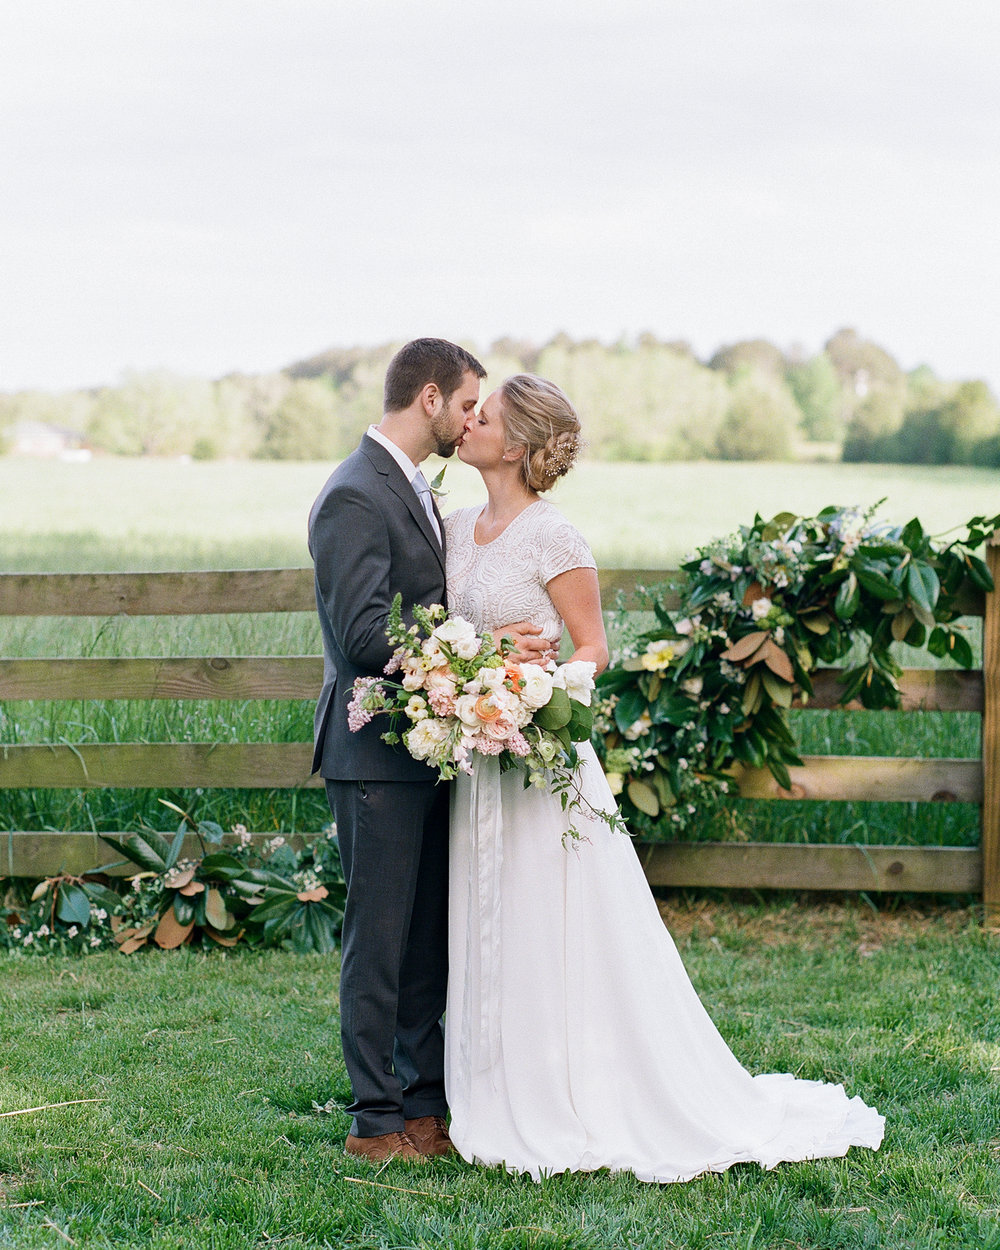 Southern Wedding at the Oaks in Madison, Georgia by Carrie Joy Photography-1036.jpg